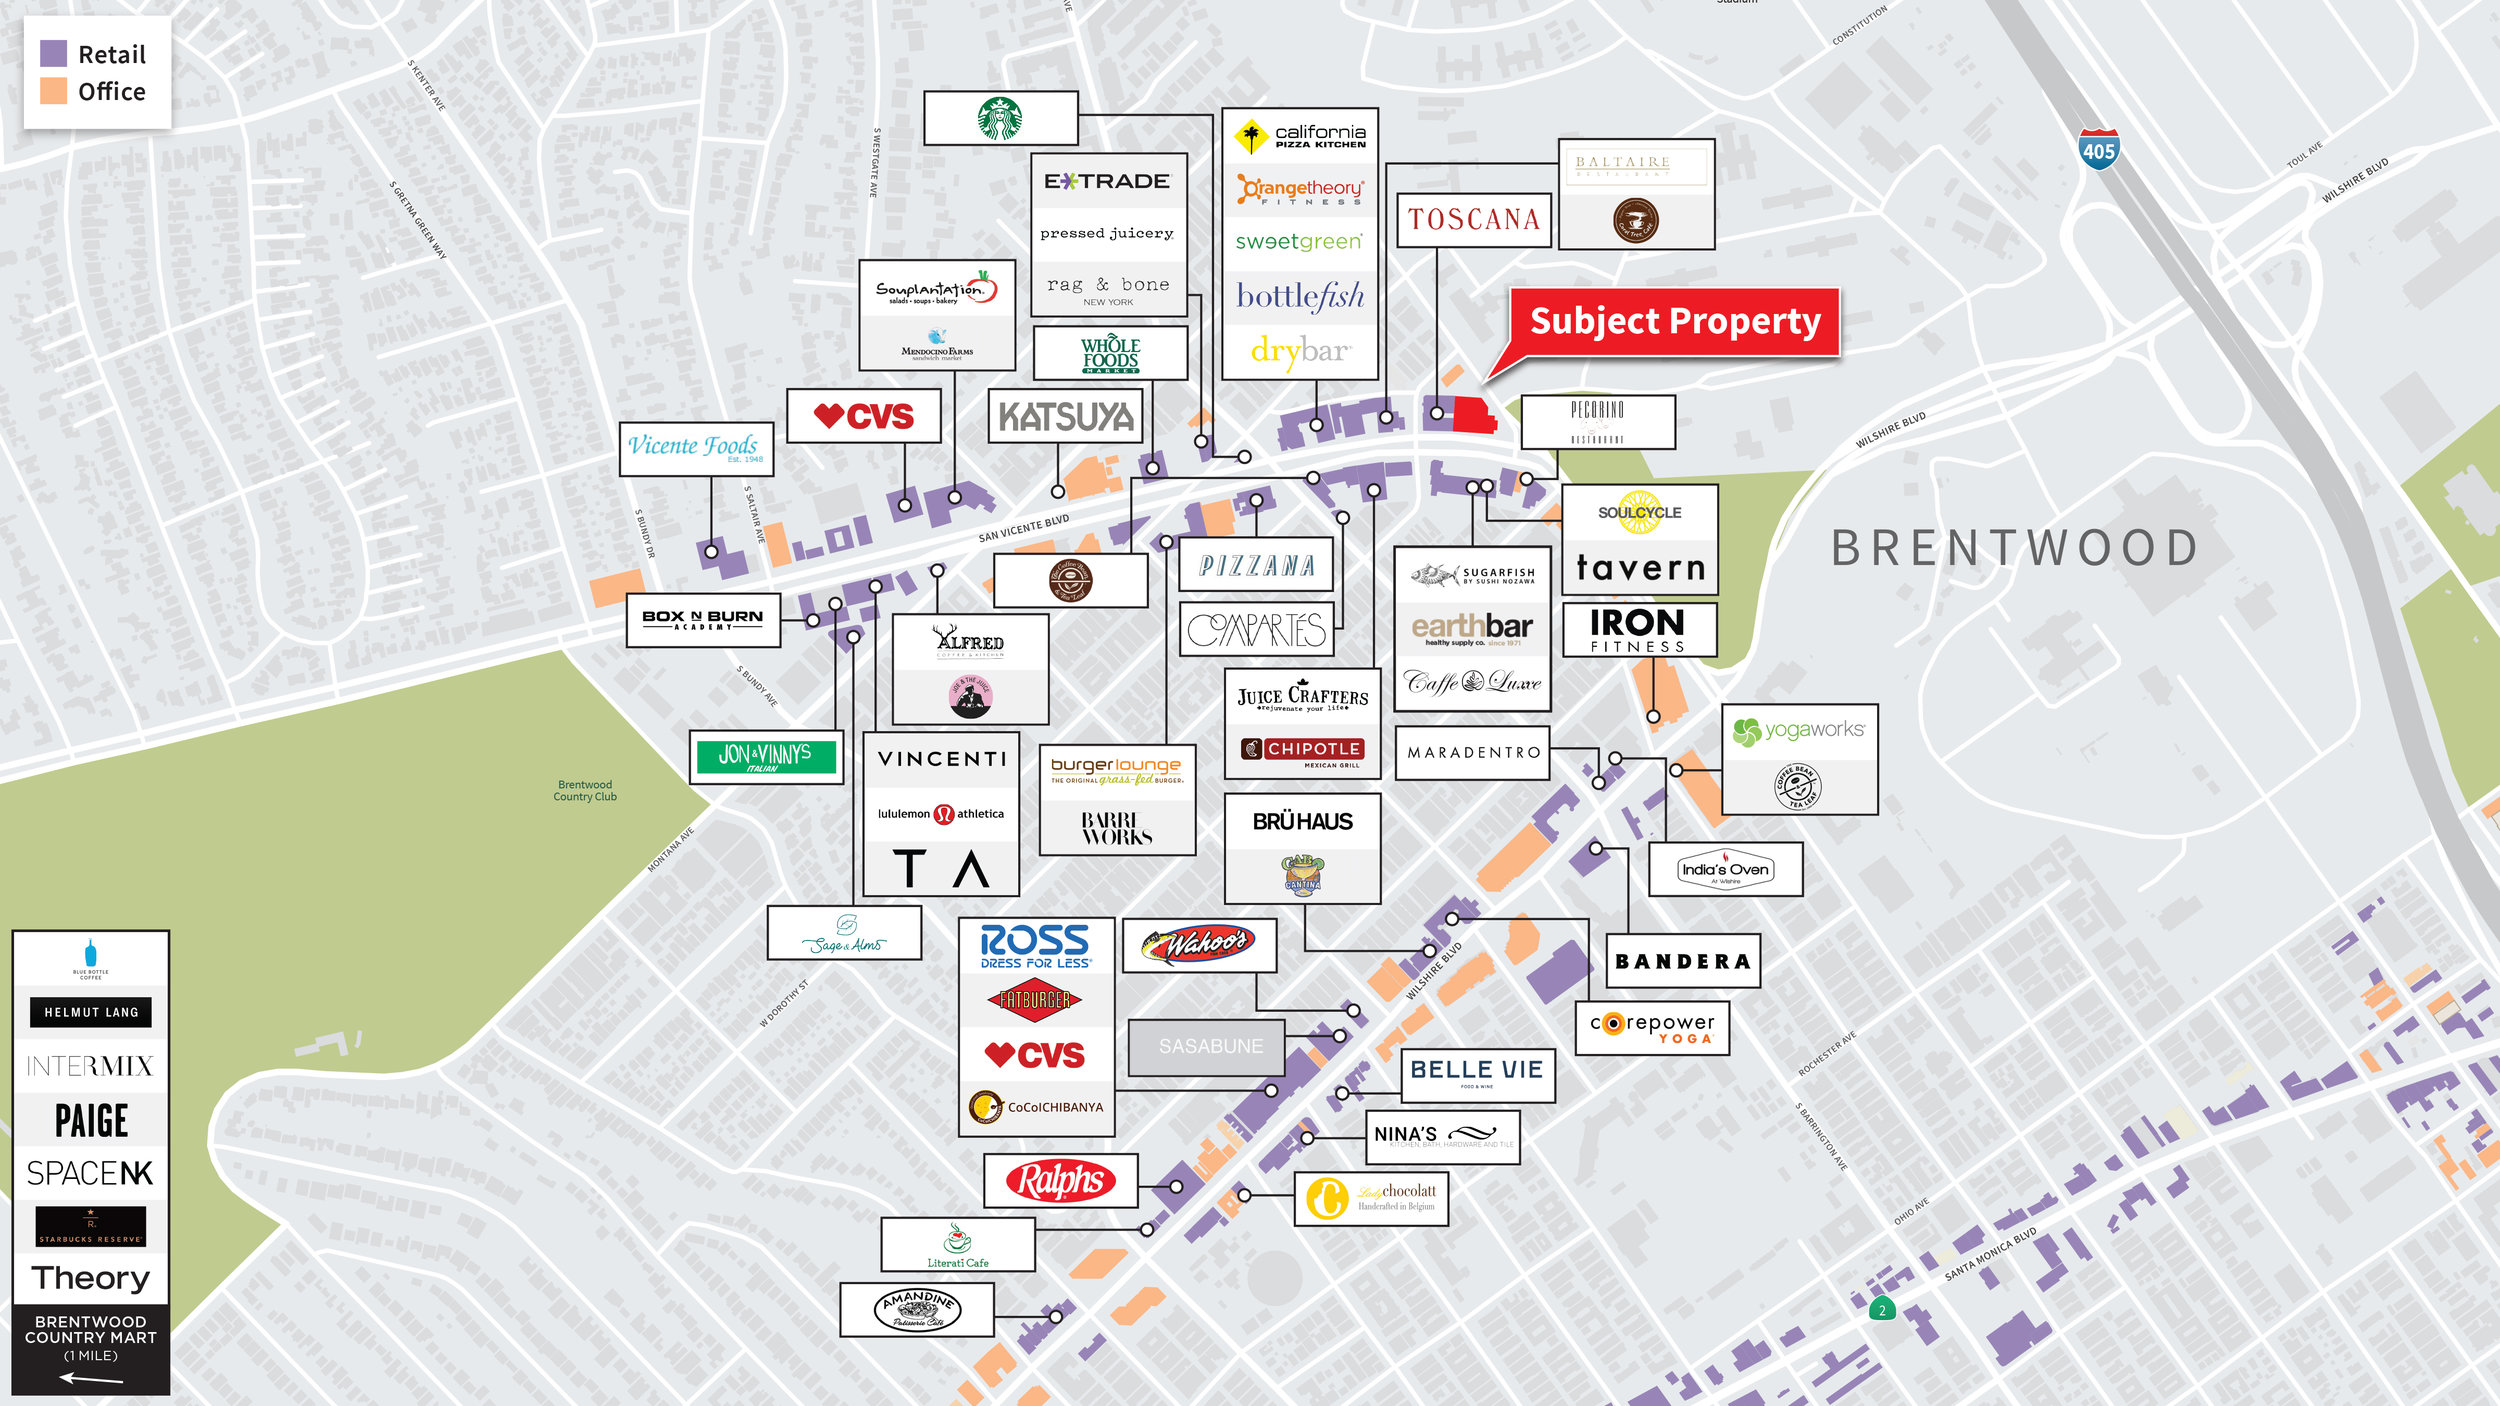 CA Brentwood Amenities Map.jpg